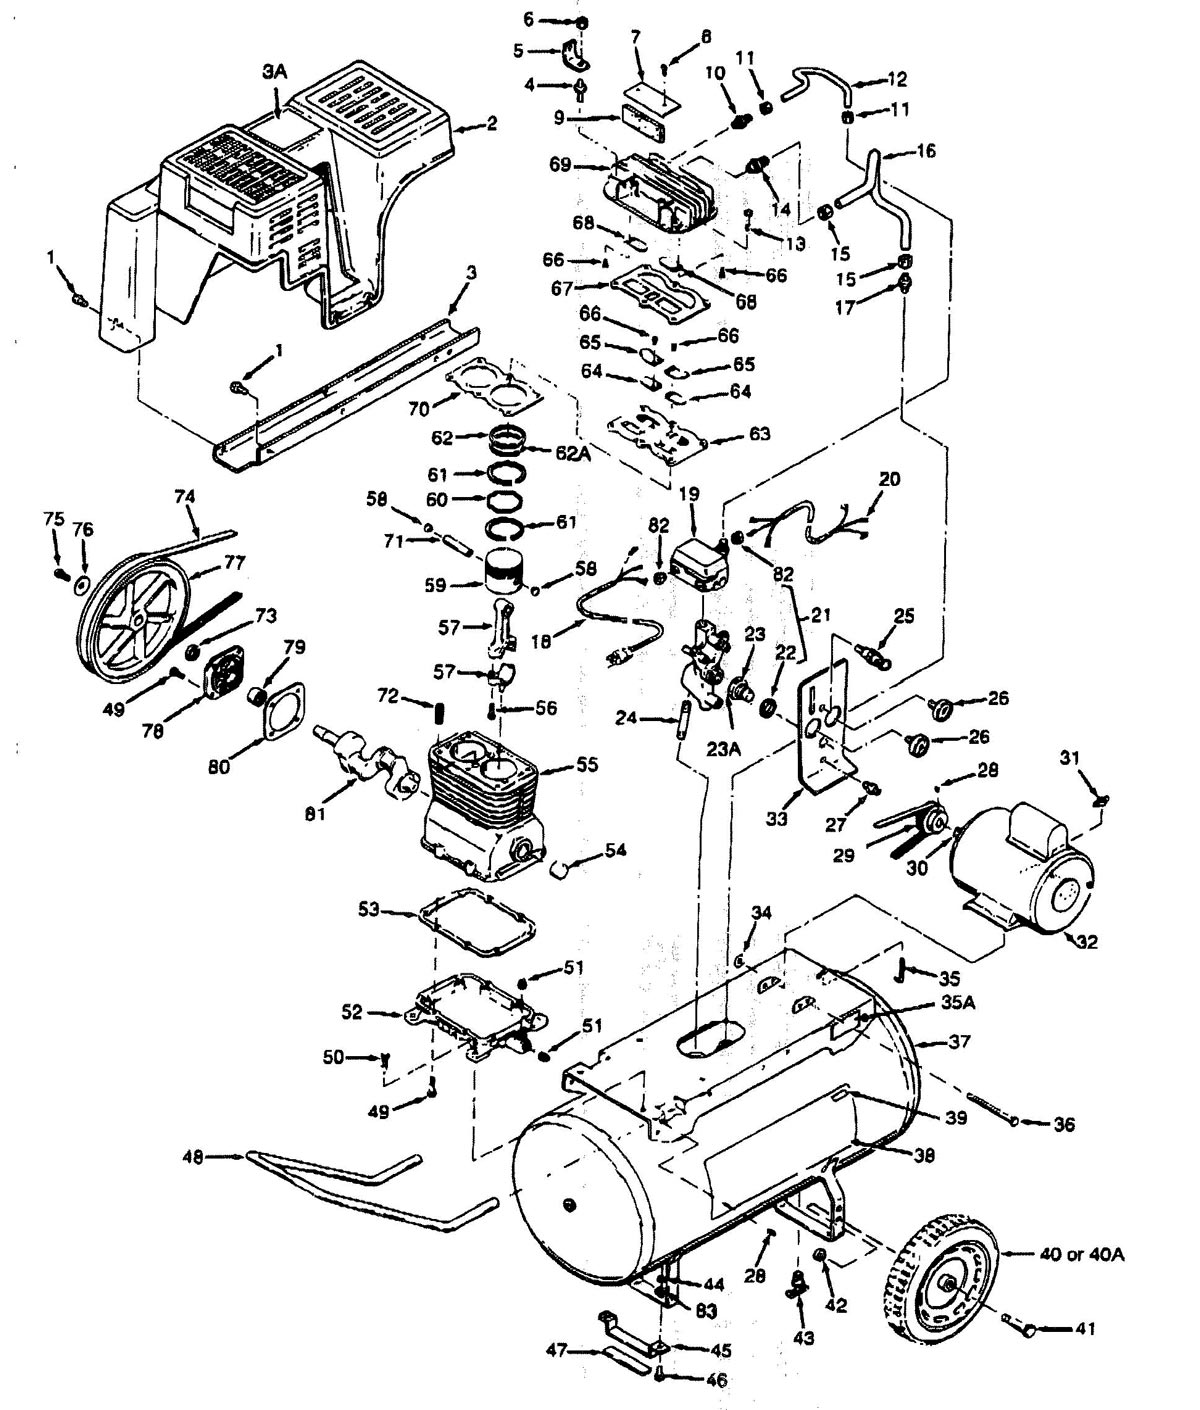 Sears Air Compressor Wiring Diagram 35 Images Craftsman Compressors Wire Diagrams 919176210 Parts 919 176311 176330 1 Hp